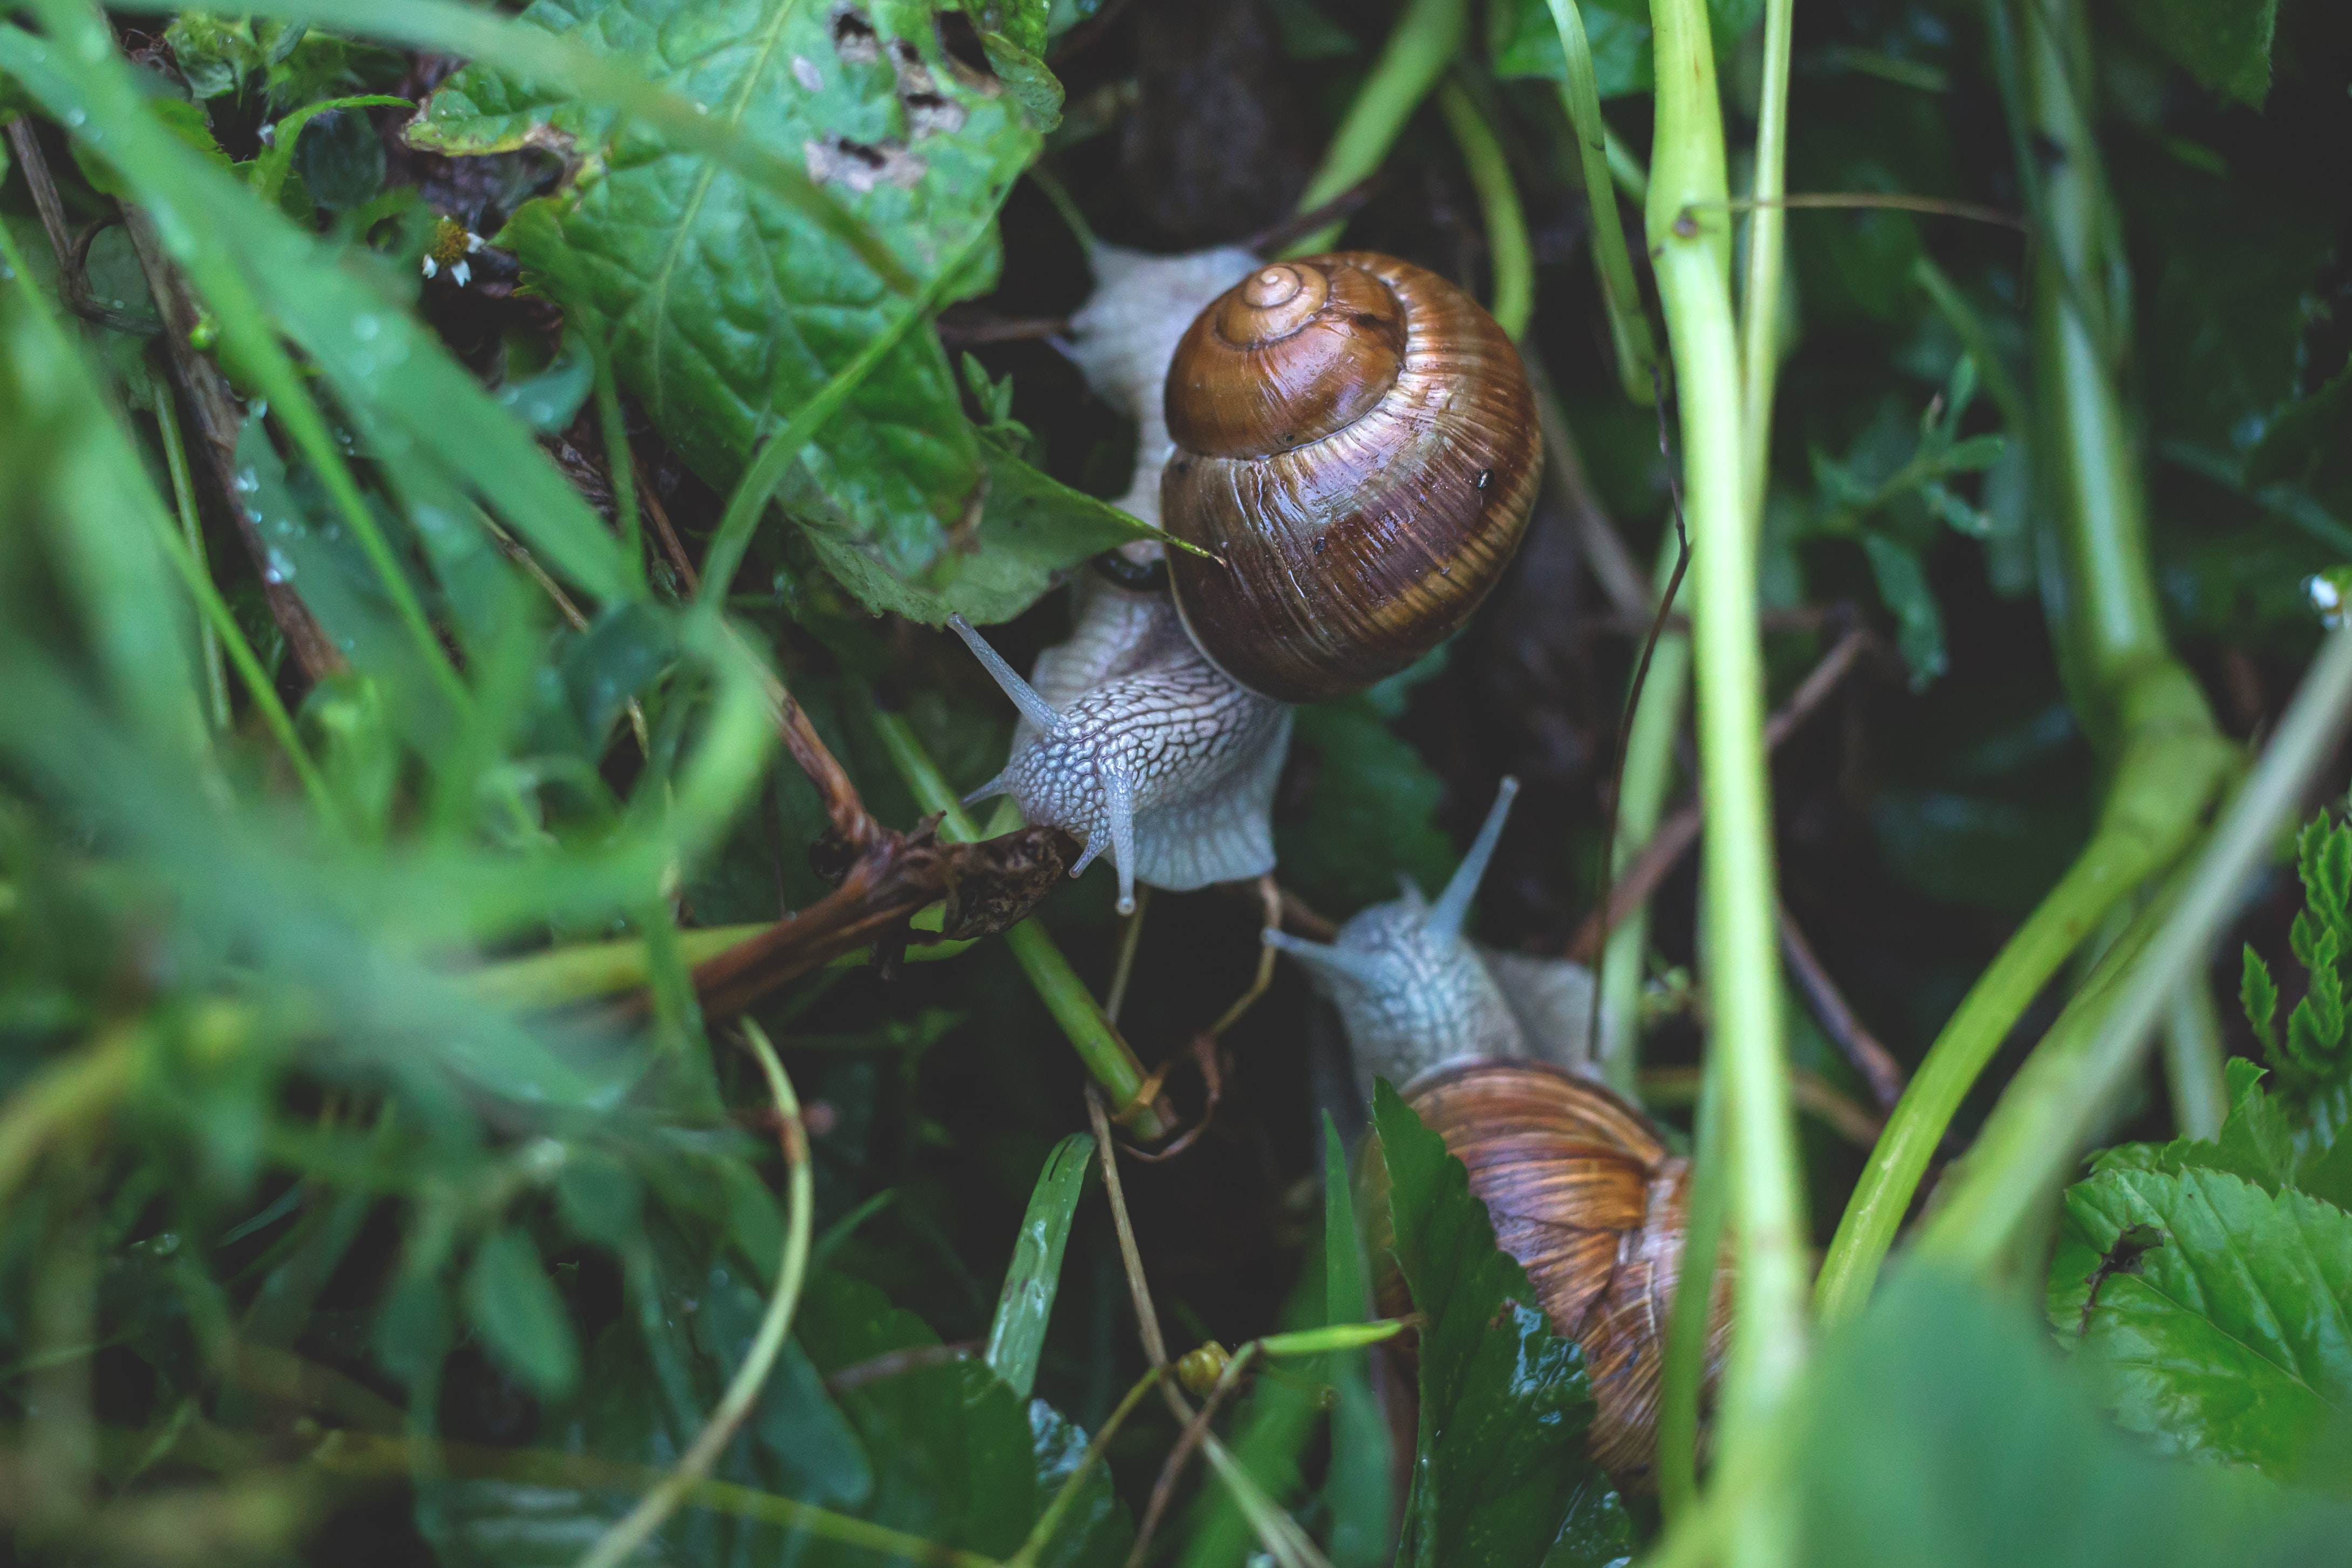 Snails slowly make their way through the wet grass